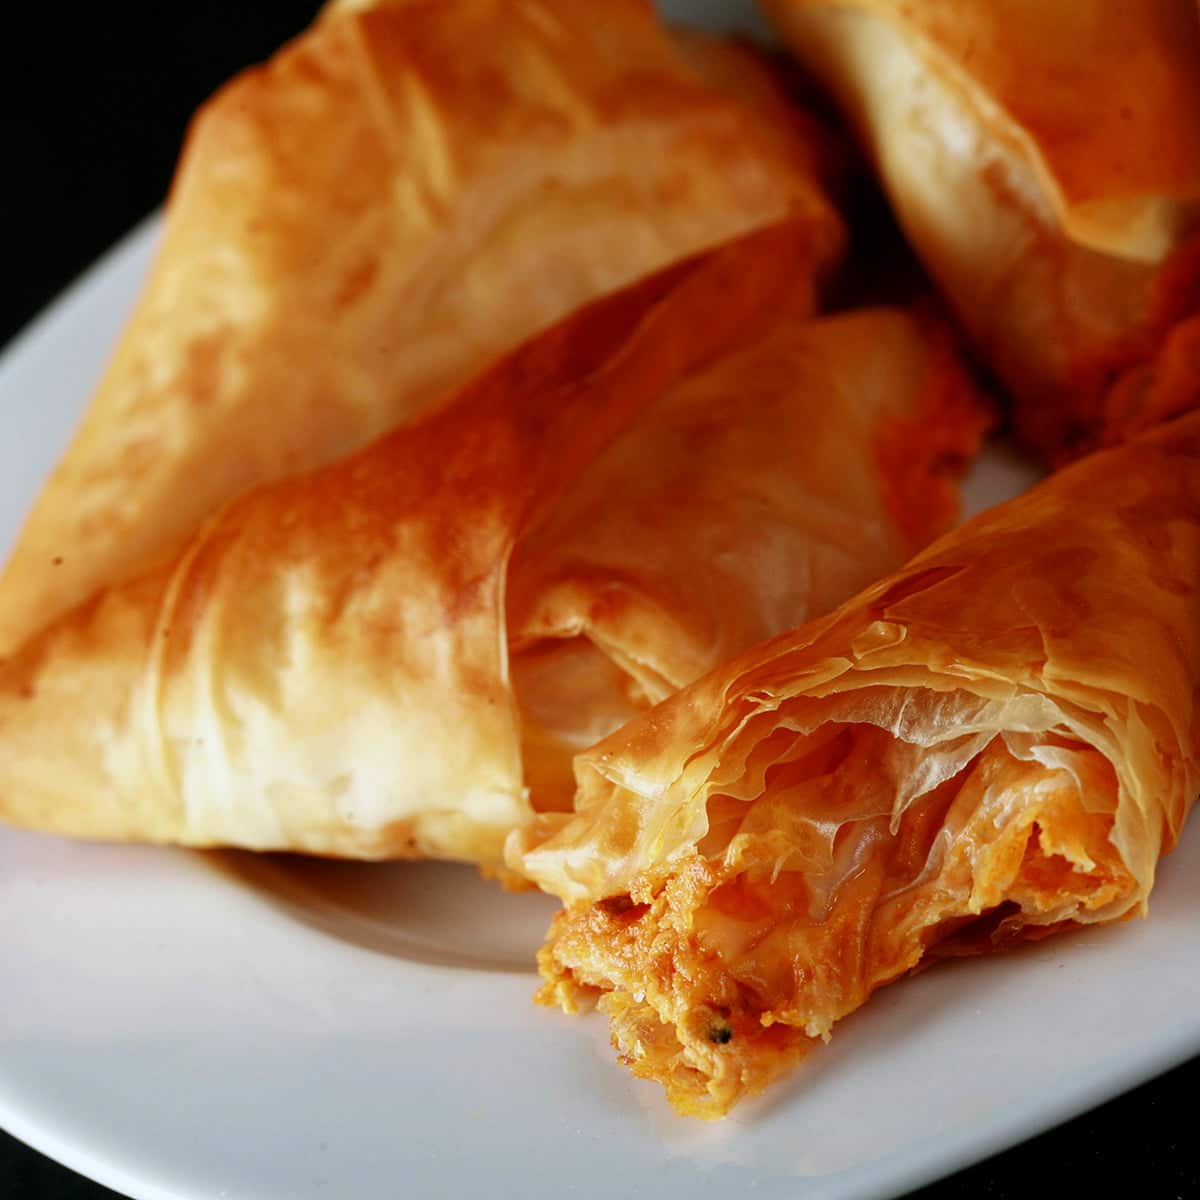 A close up view of a triangular pastry made from folded phyllo dough. They are flaky and crispy, with a red filling showing from one that has been bitten into.